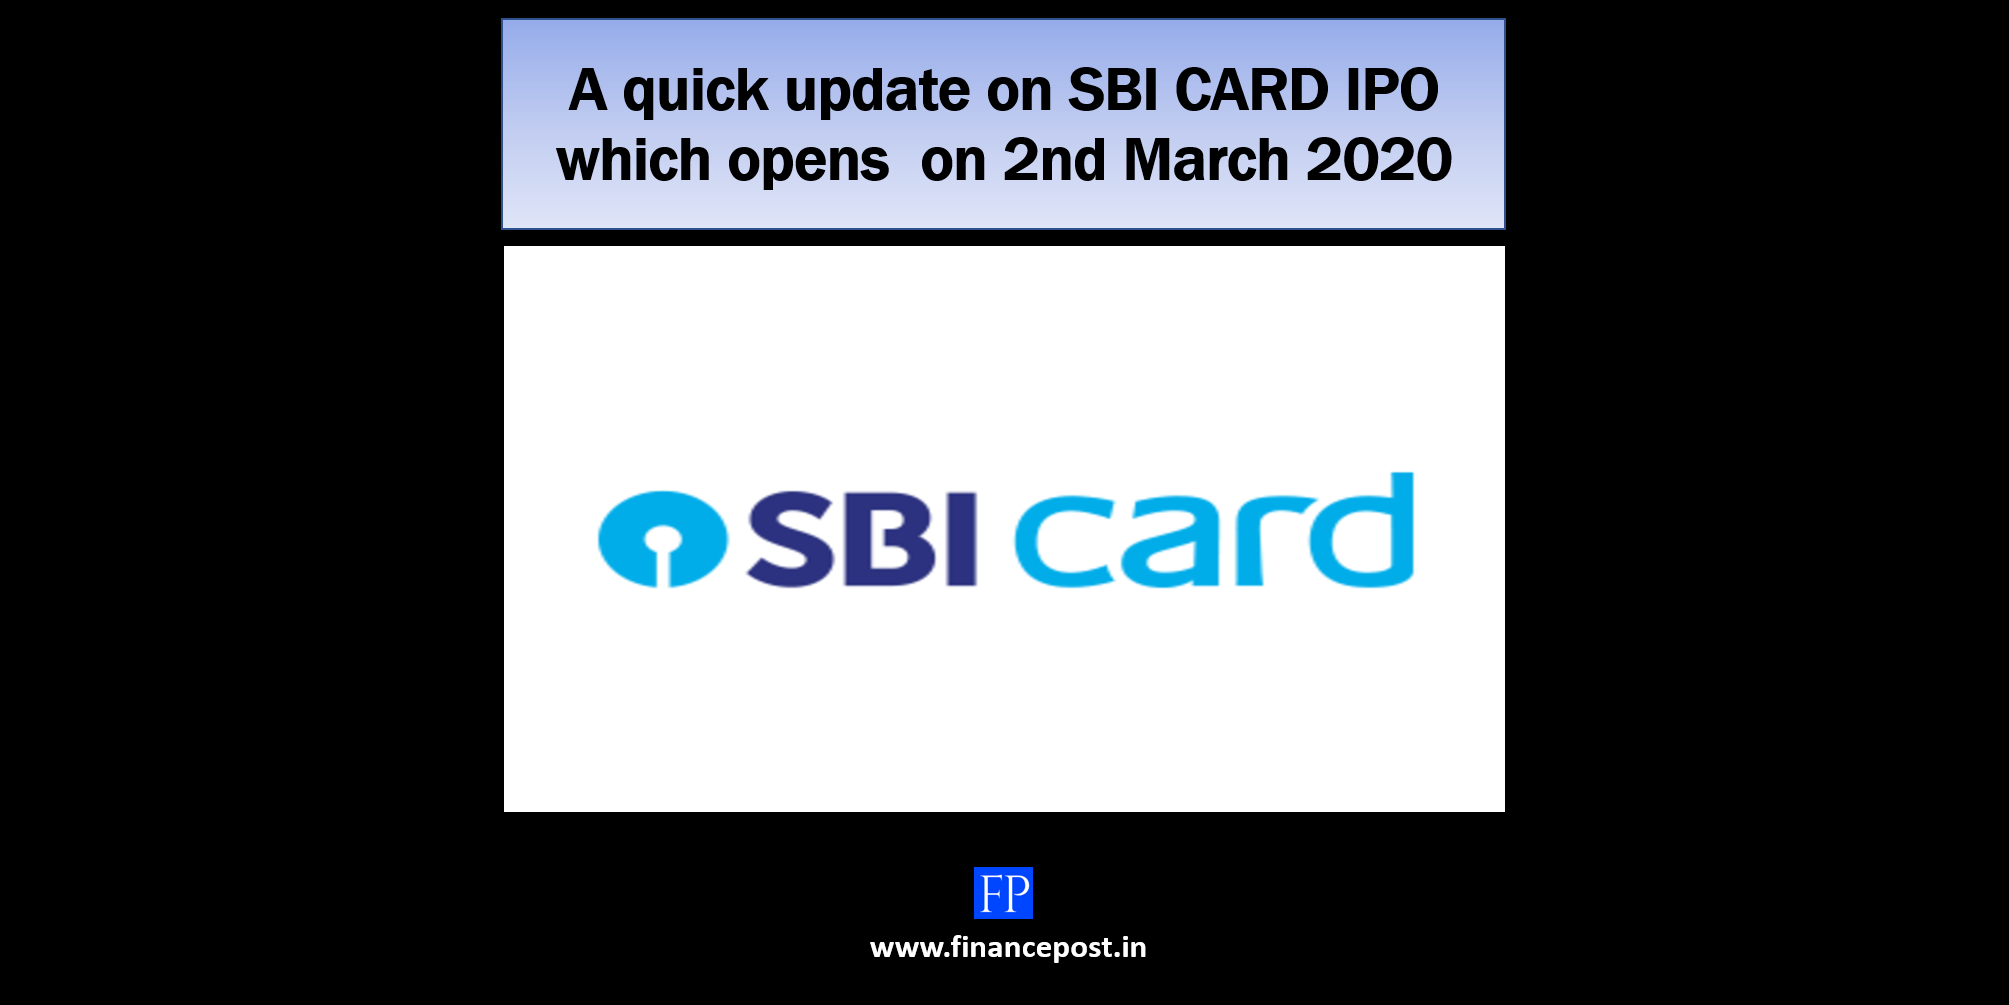 A quick update on SBI CARD IPO which opens on 2nd March 2020